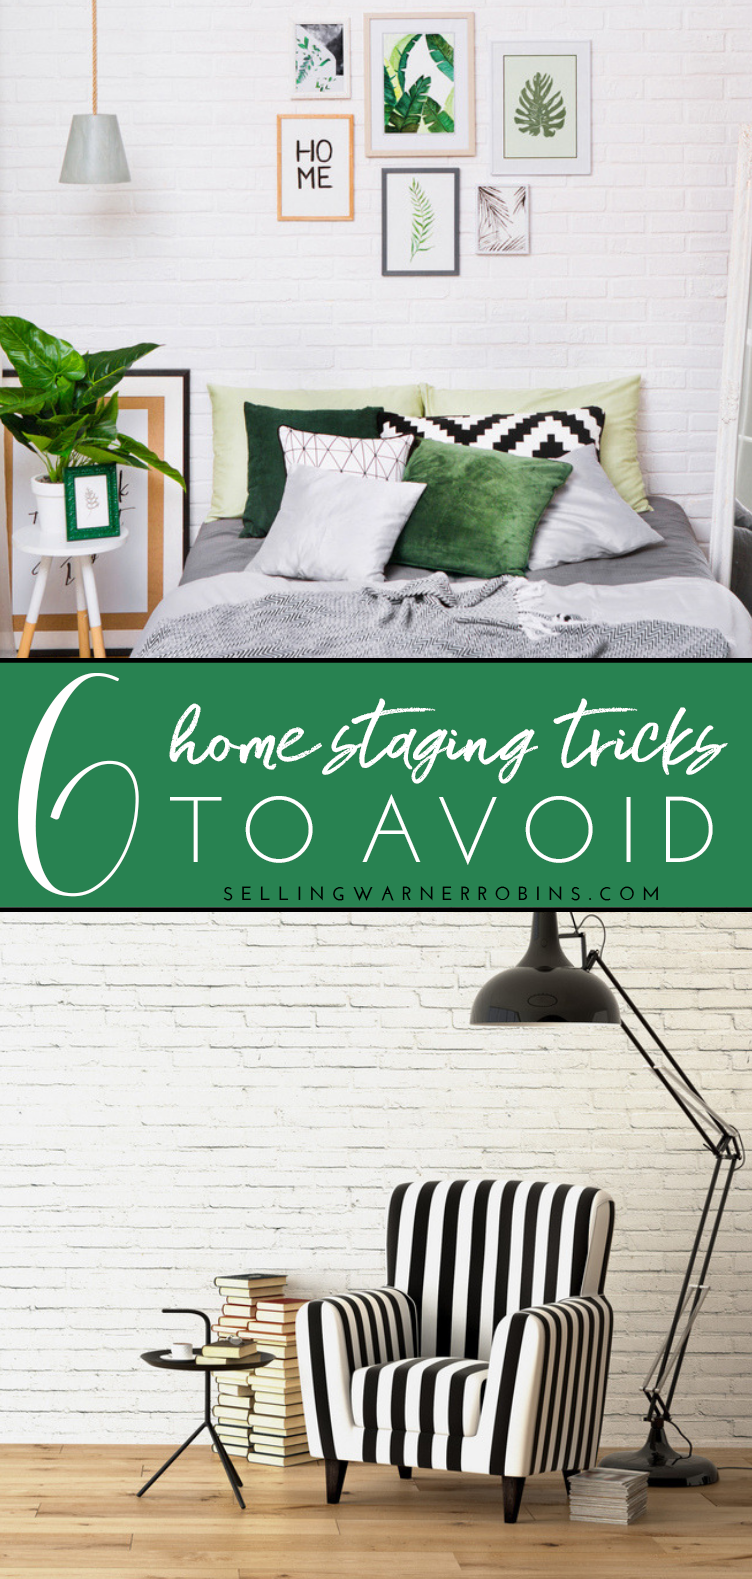 Presale and staging tricks to avoid best real estate and home